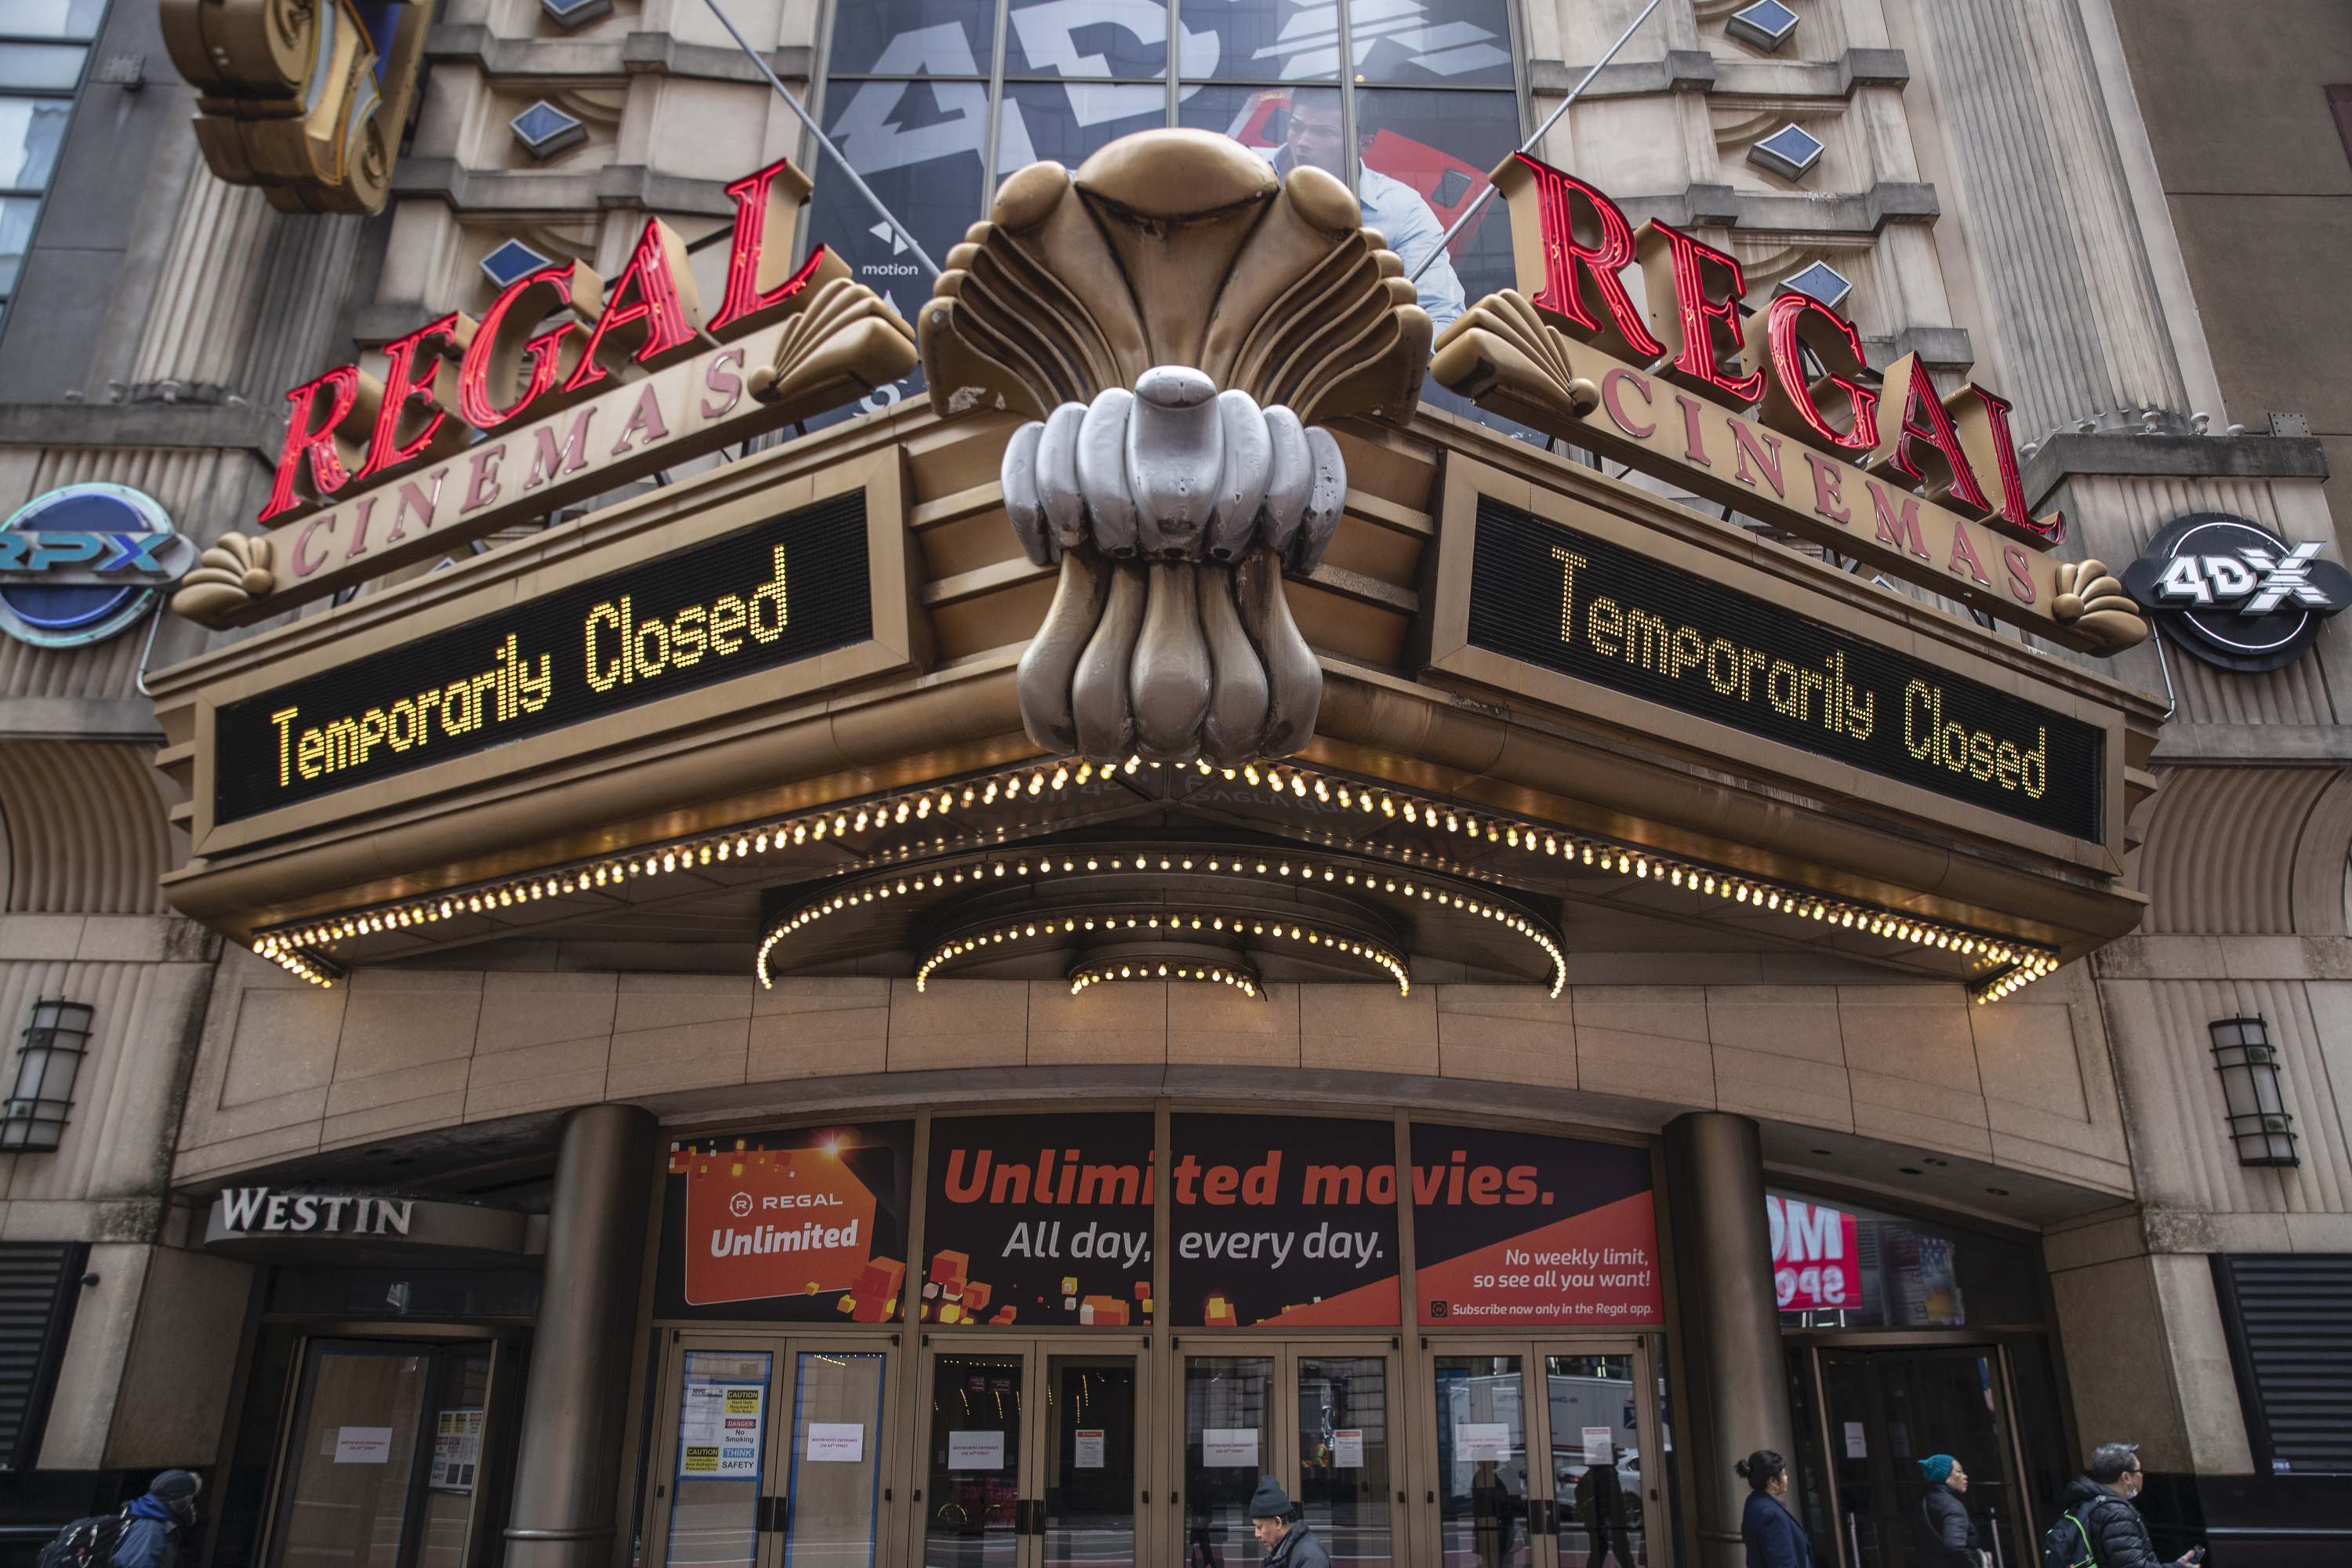 regal cinemas suspending operations at all 536 theaters where in n j when they close ticket refund info nj com https www nj com business 2020 10 regal cinemas temporarily closing all theaters when where why info on ticket refunds html